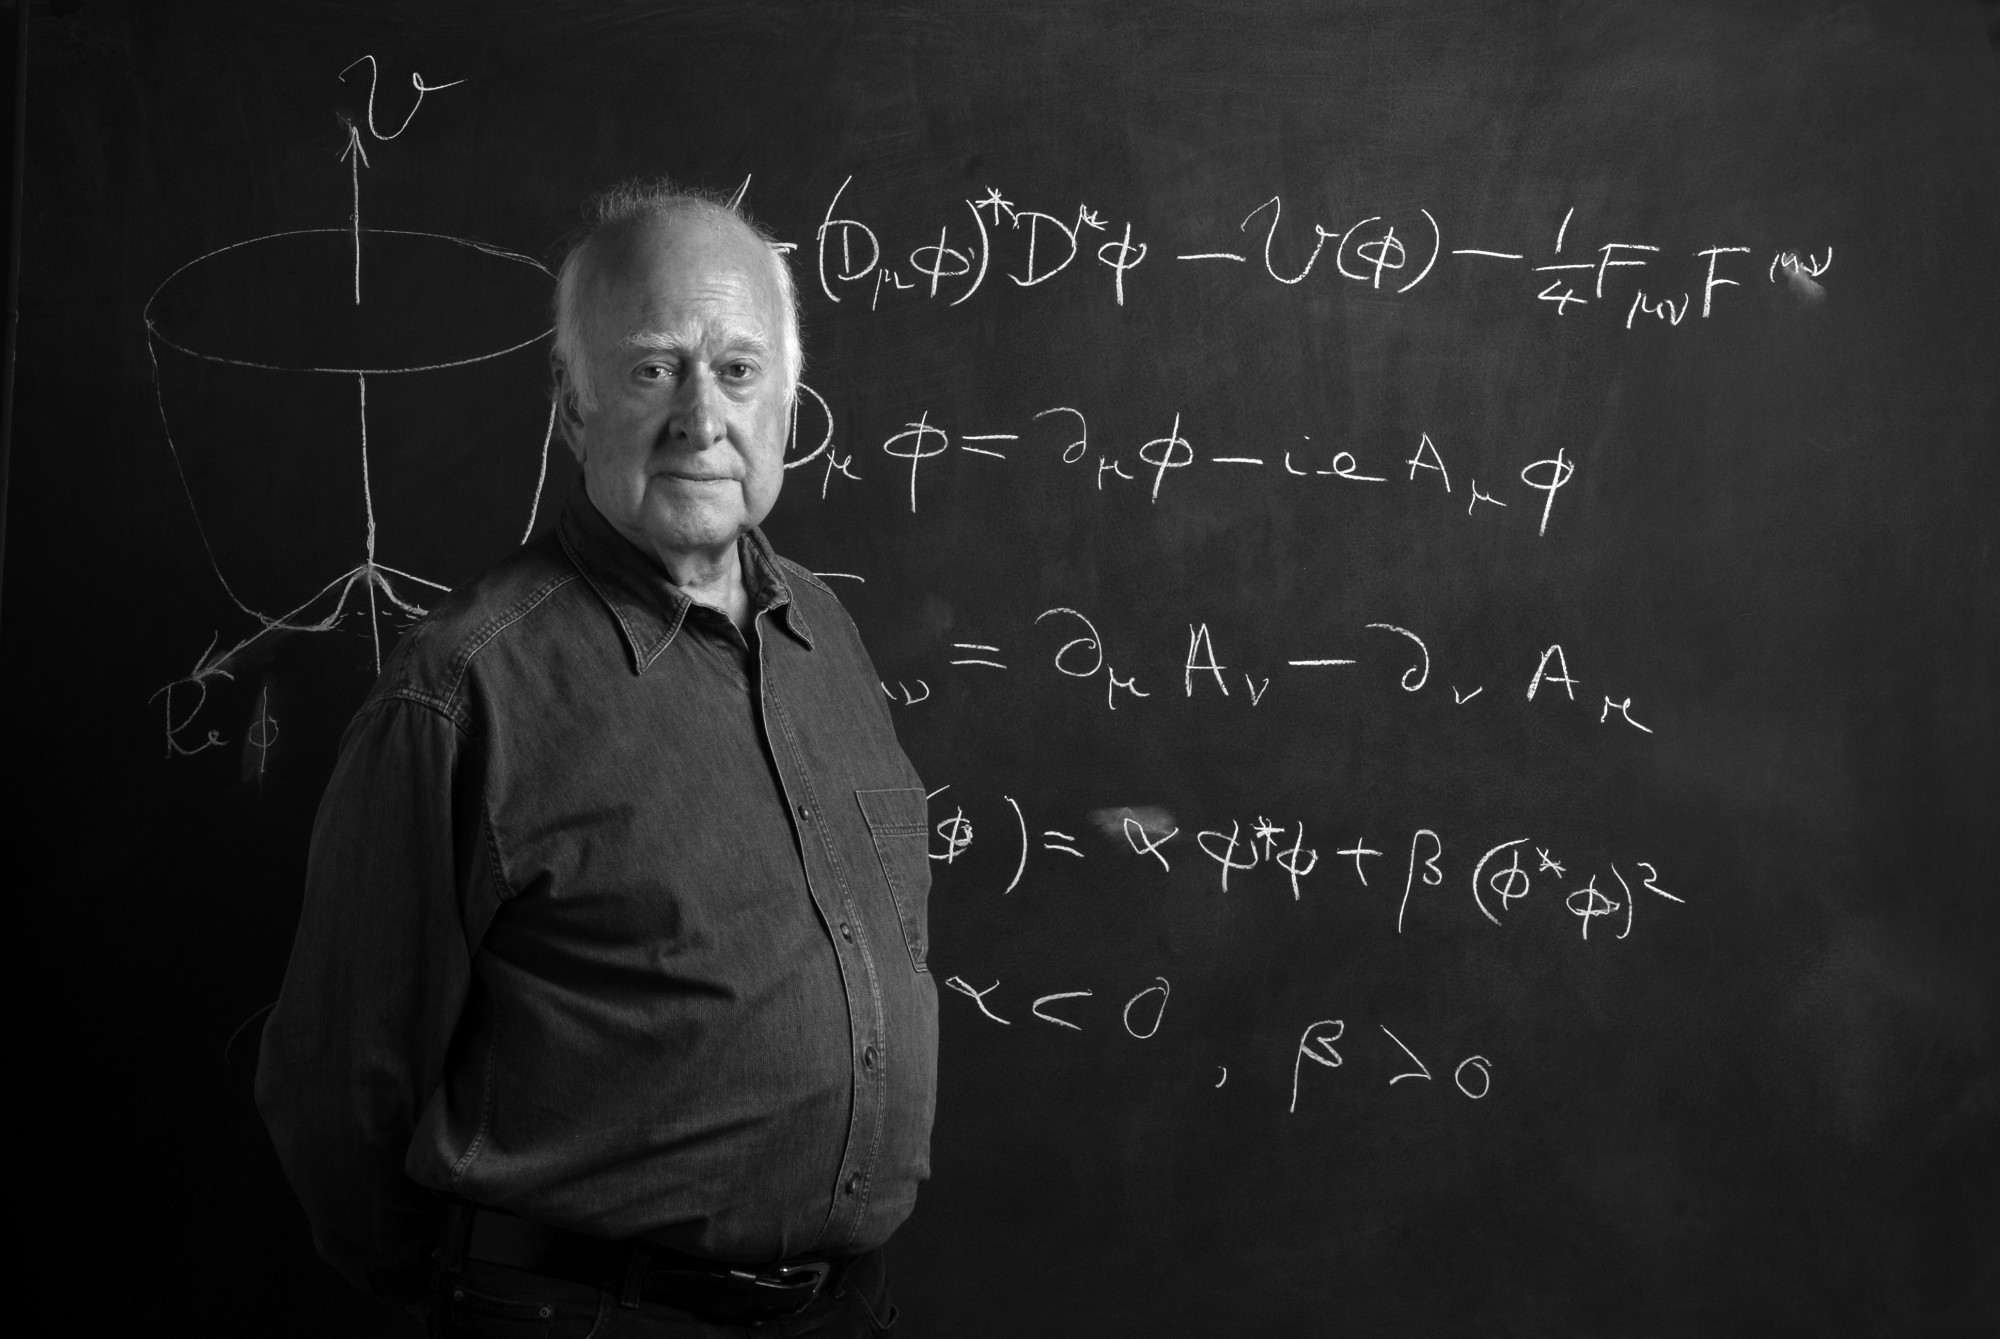 B&W photographic portrait of Peter Higgs, in front of blackboard, taken by Peter Tuffy. 17 June 2009.